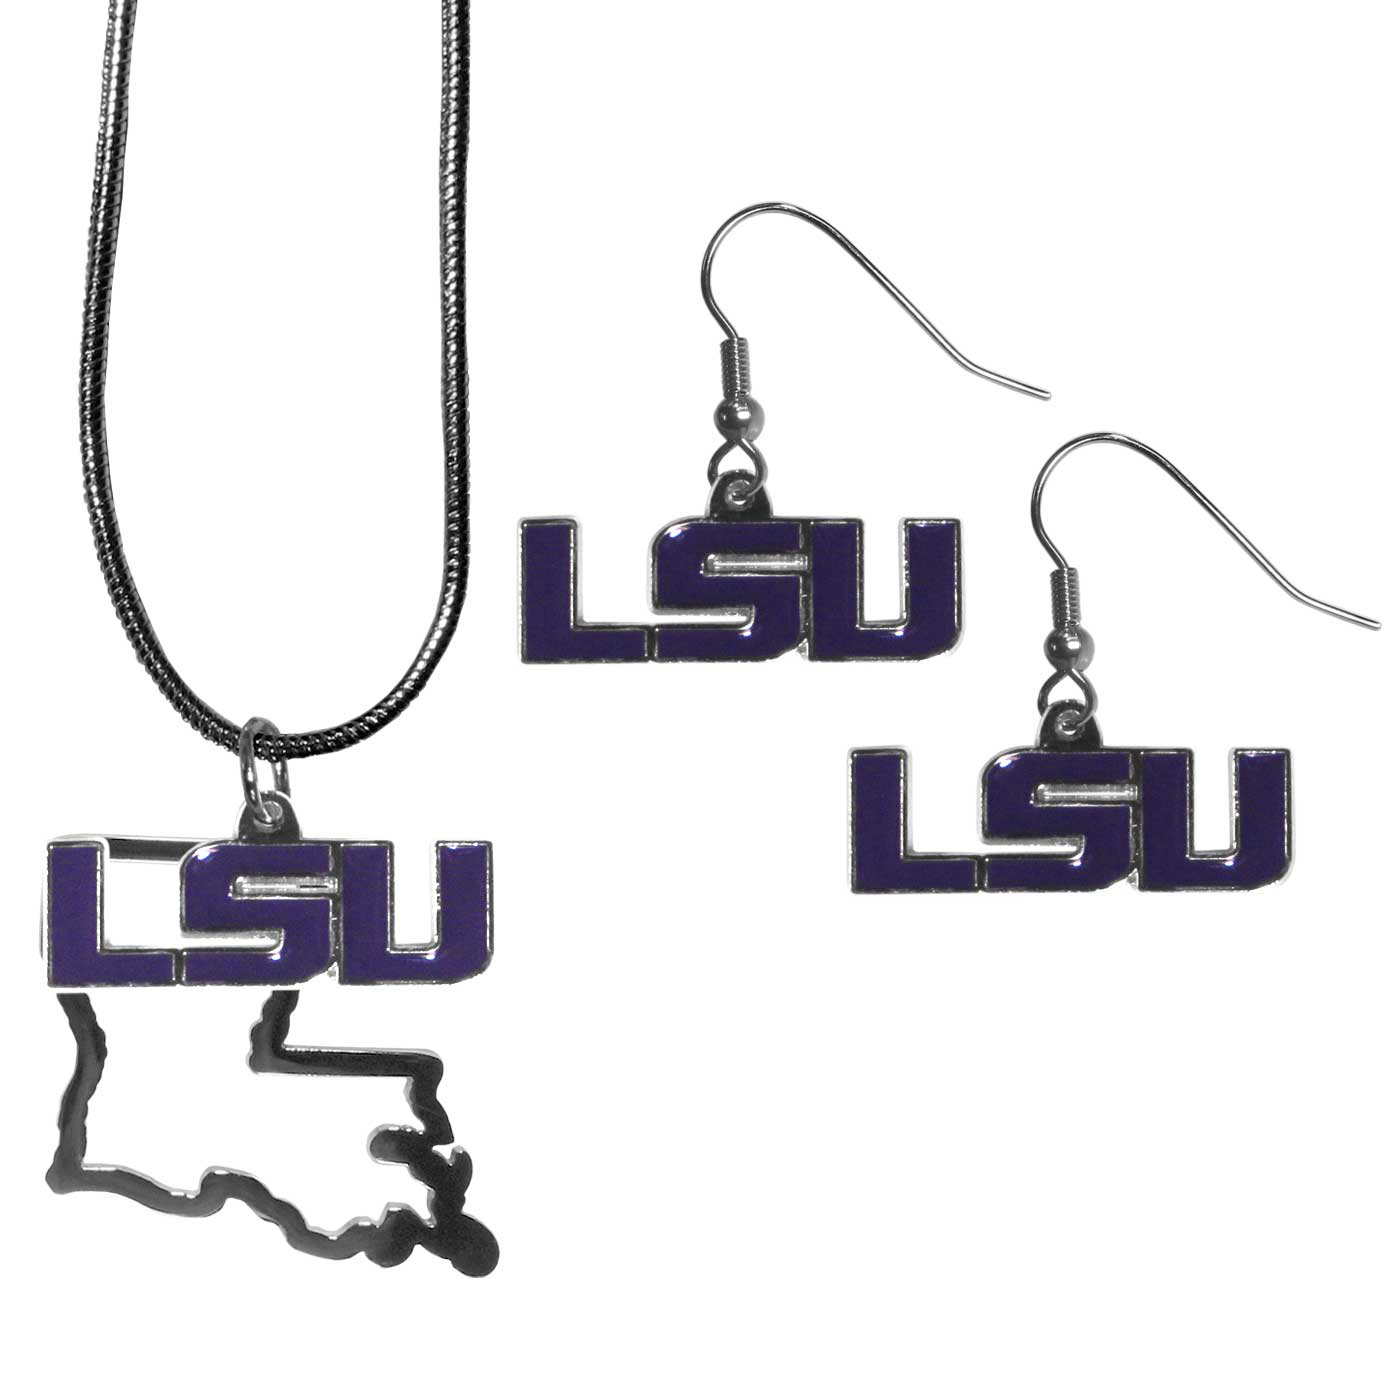 LSU Tigers Dangle Earrings and State Necklace Set - Get in on the trend! State themes are a trend that just keeps getting more popular and this jewelry set takes the state style and give it a sporty twist with a LSU Tigers necklace that features an Arizona state outline charm paired with a beautiful team charm and matching team charm dangle earrings. The earrings feature hypoallergenic fishhook posts that are nickel free.